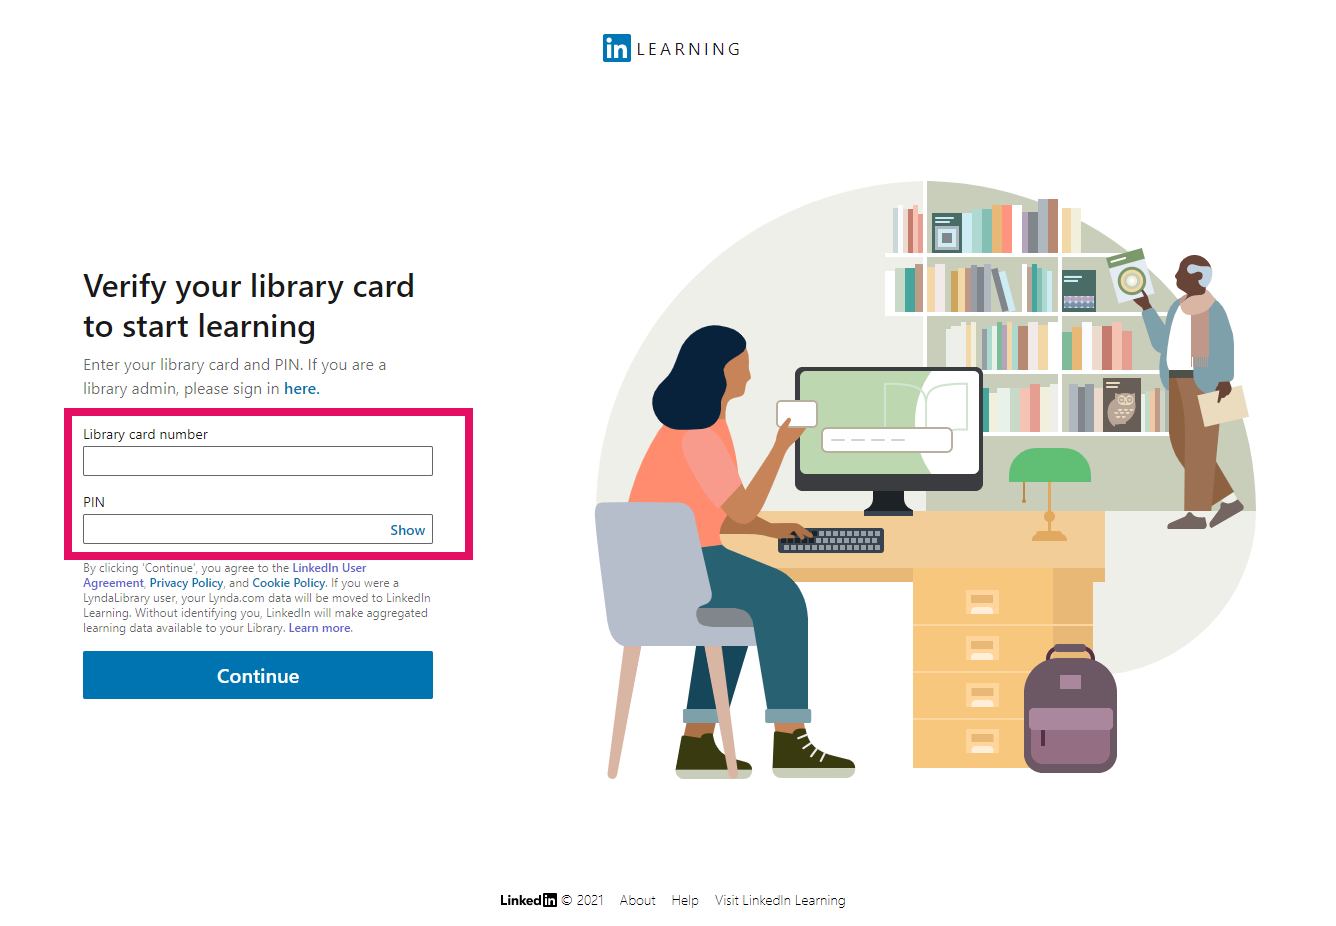 Enter in your library barcode and PIN